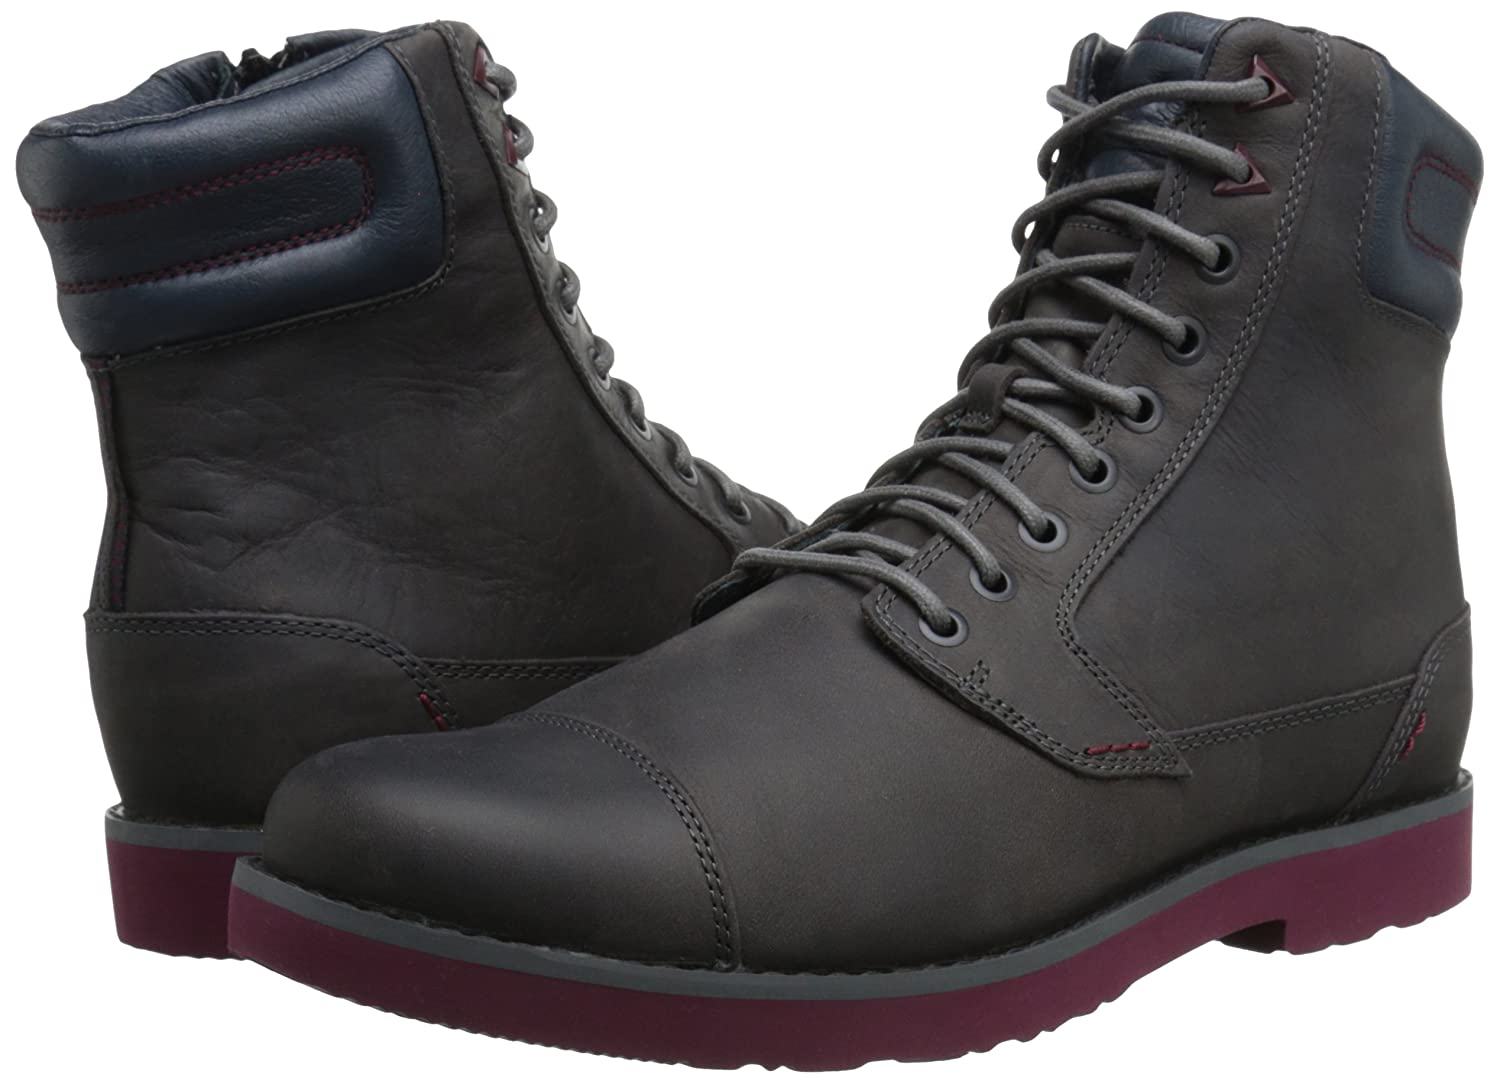 Teva M Mason Tall - Leather-M - Botines de Piel Hombre, Color Gris, Talla 47: Amazon.es: Zapatos y complementos